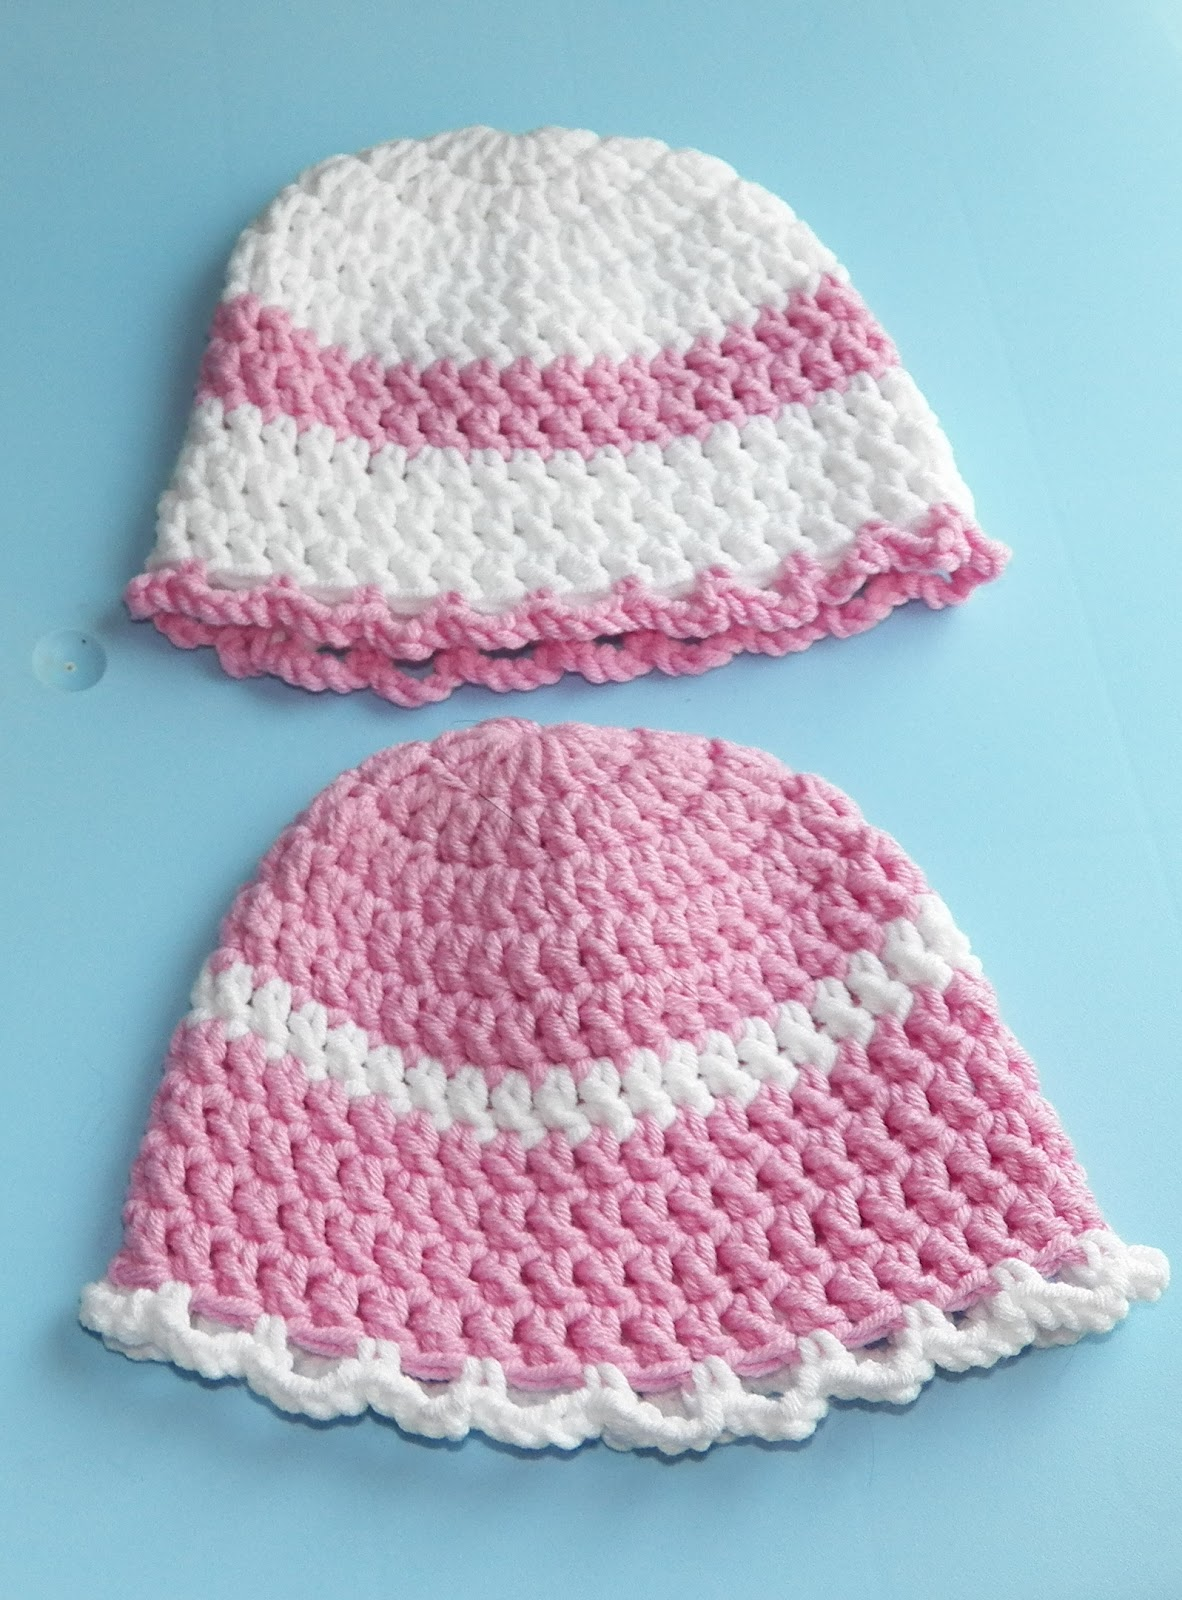 Crochet Patterns Baby Bee Yarn : Crochet Attic: Crochet Baby Projects...Tah Dah!